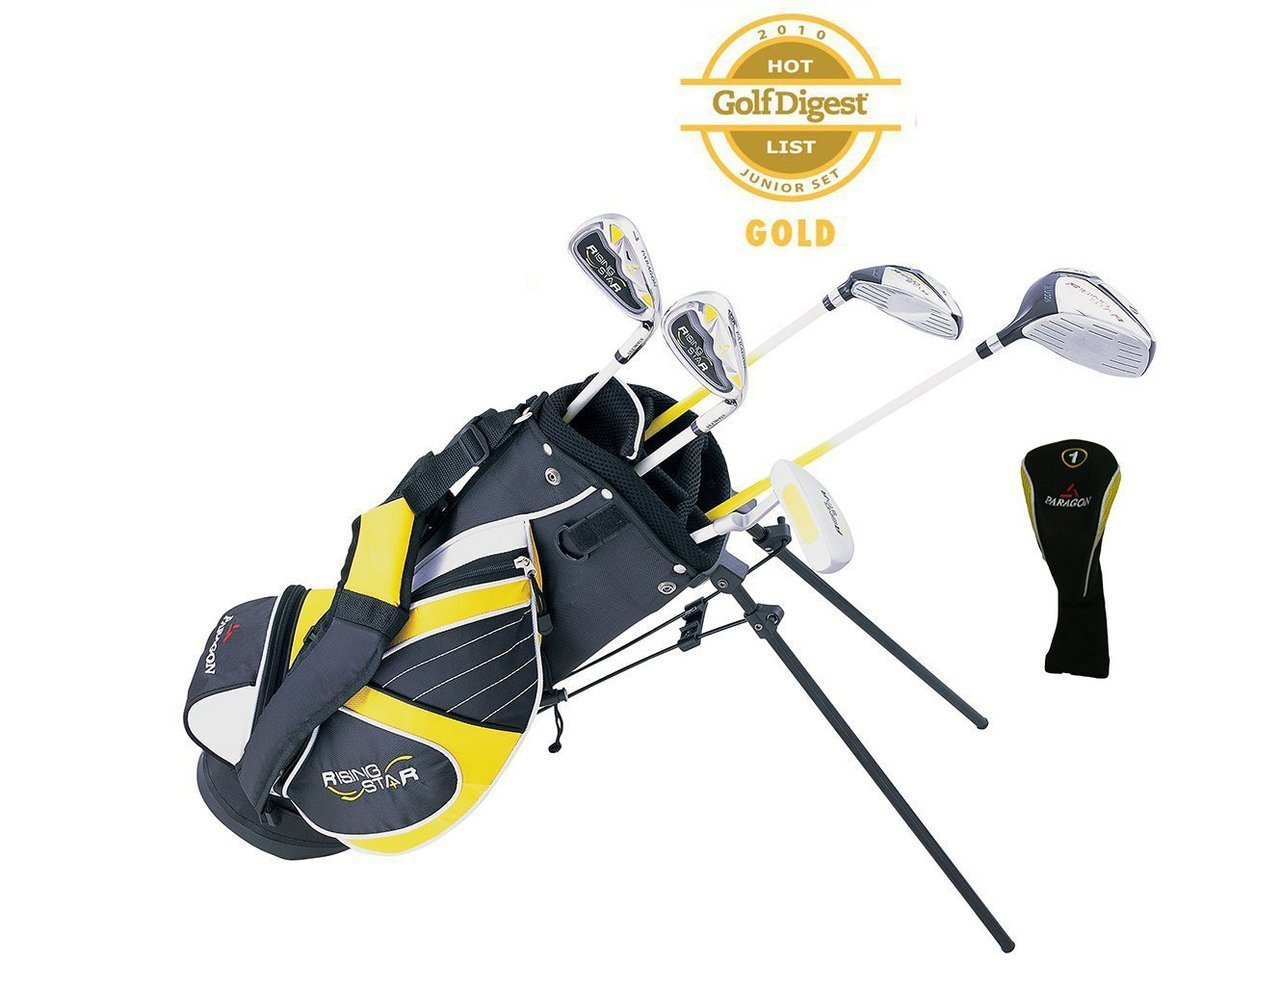 Paragon Golf Youth Golf Club Set, Yellow, Ages 5-7 - Right Handed